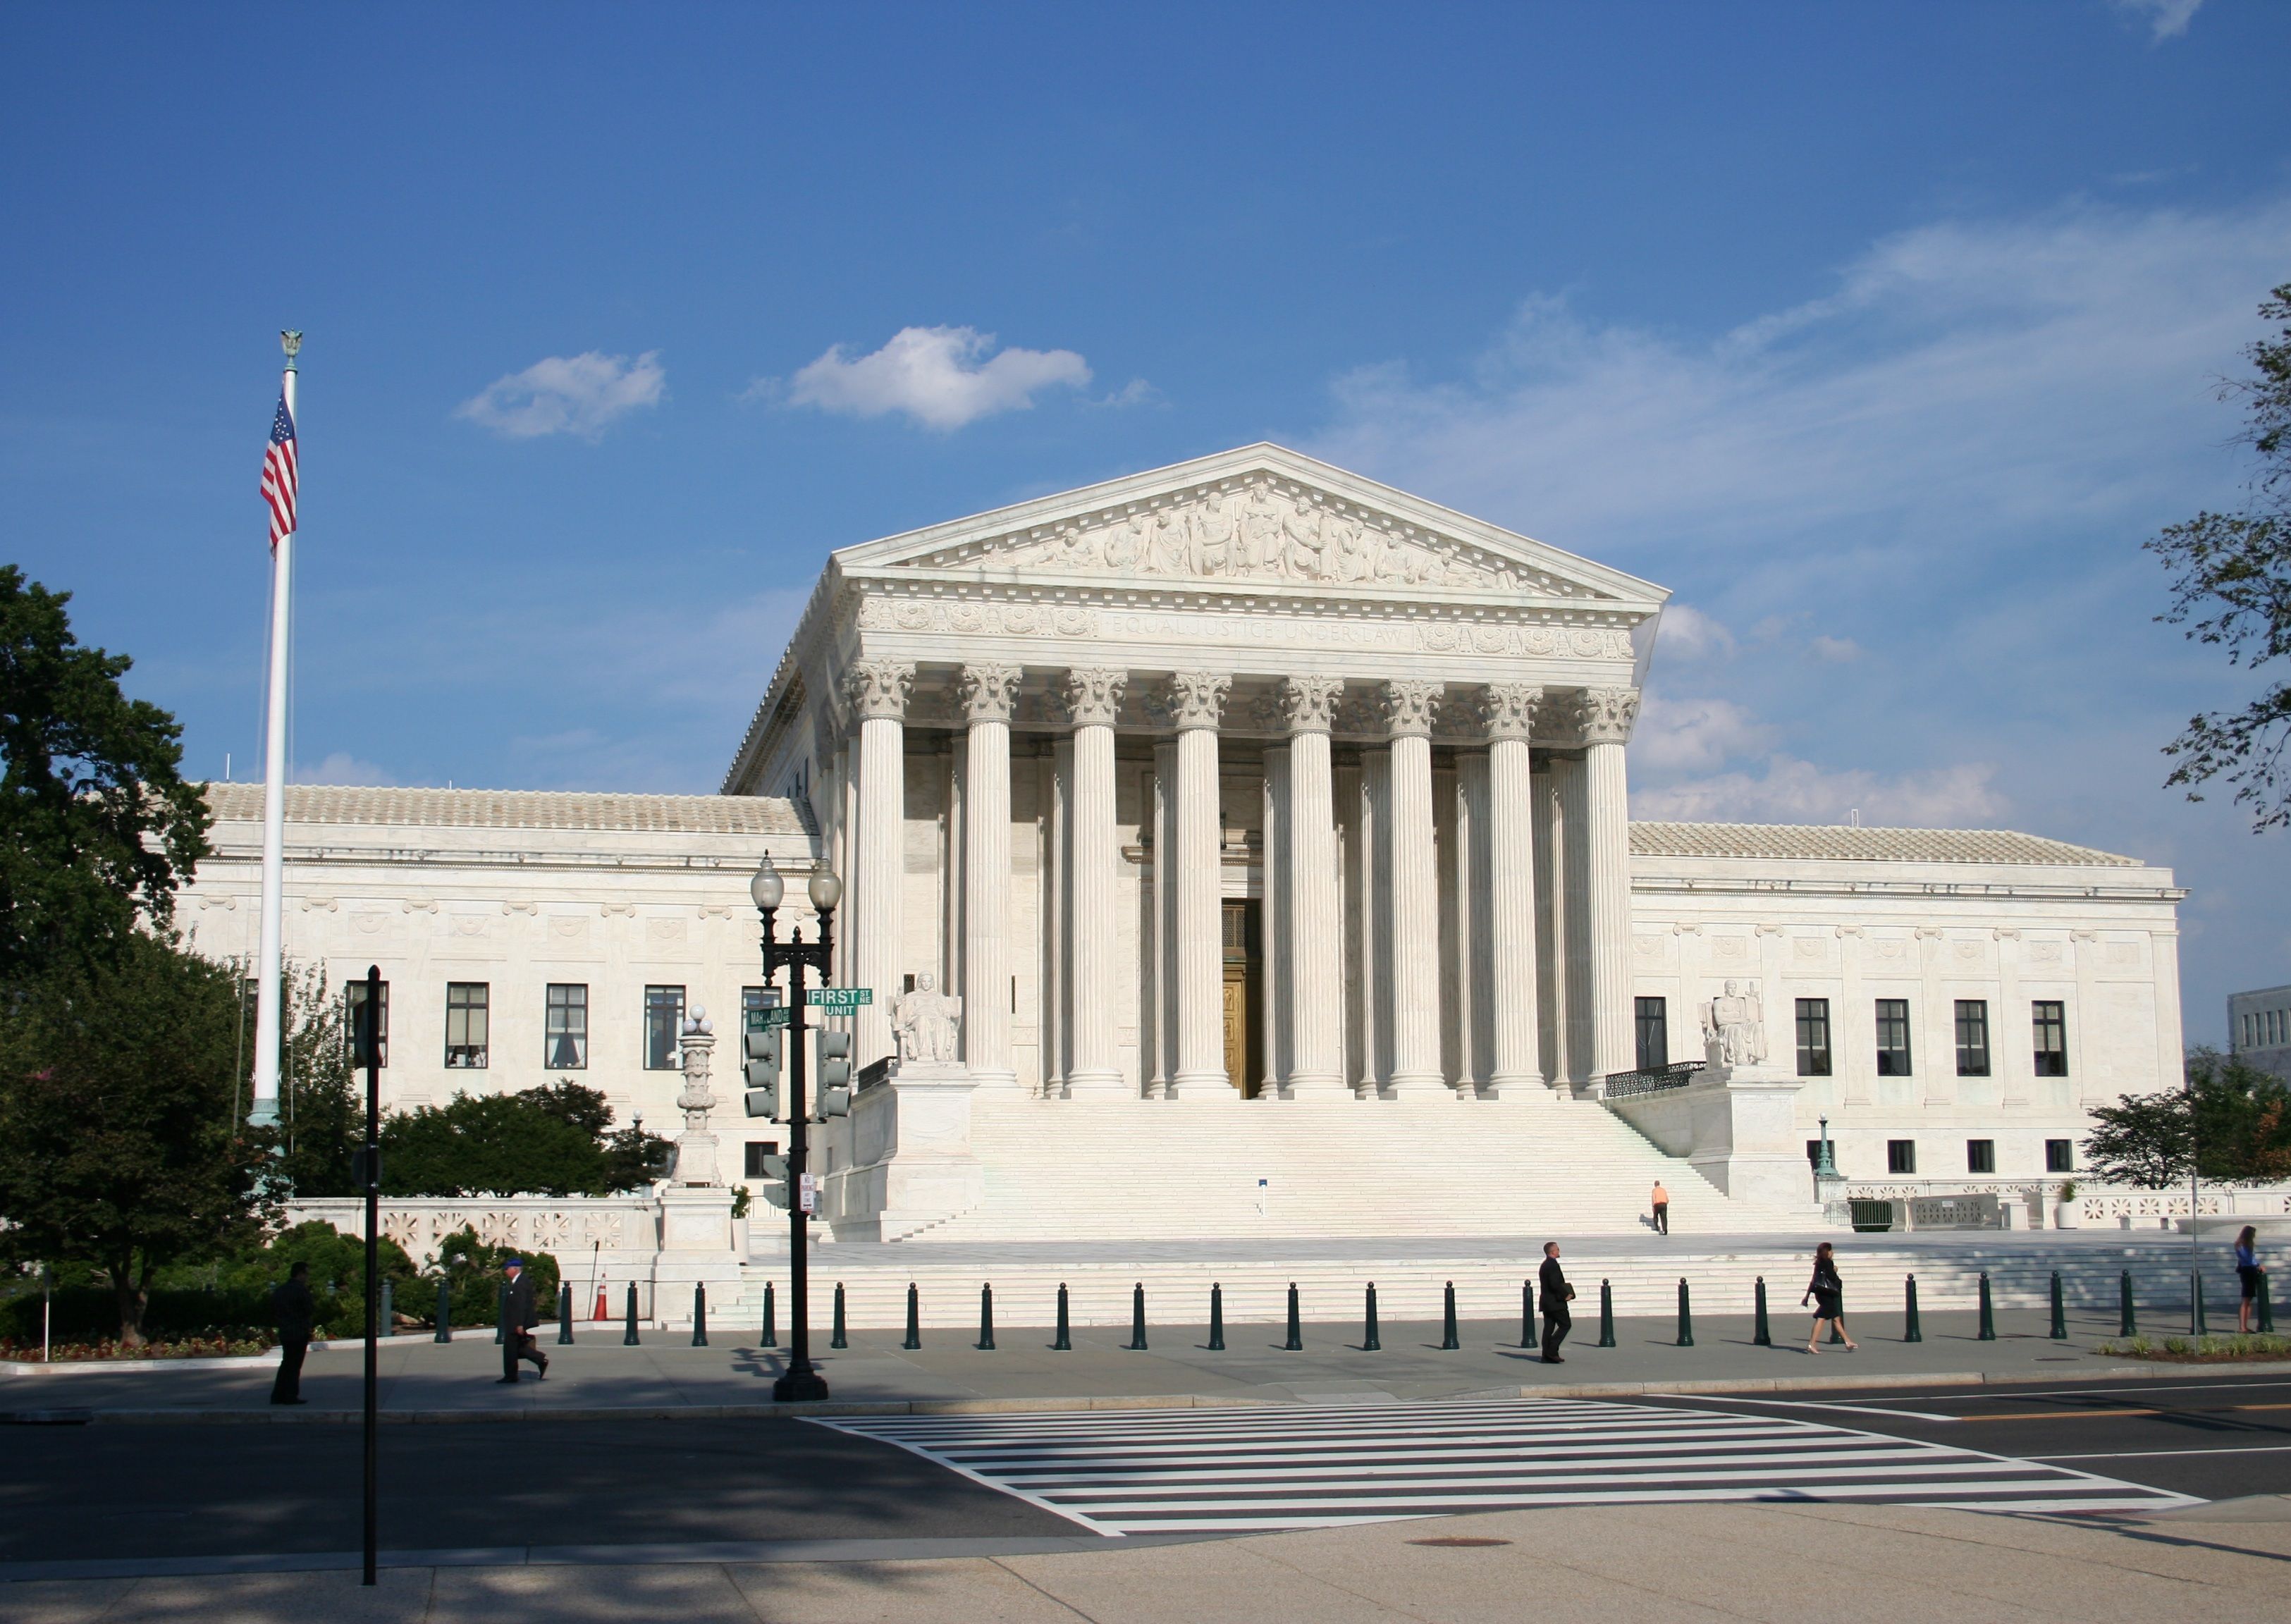 A report from inside the Supreme Court hearing on partisan gerrymandering and meeting Arnold Schwarzenegger